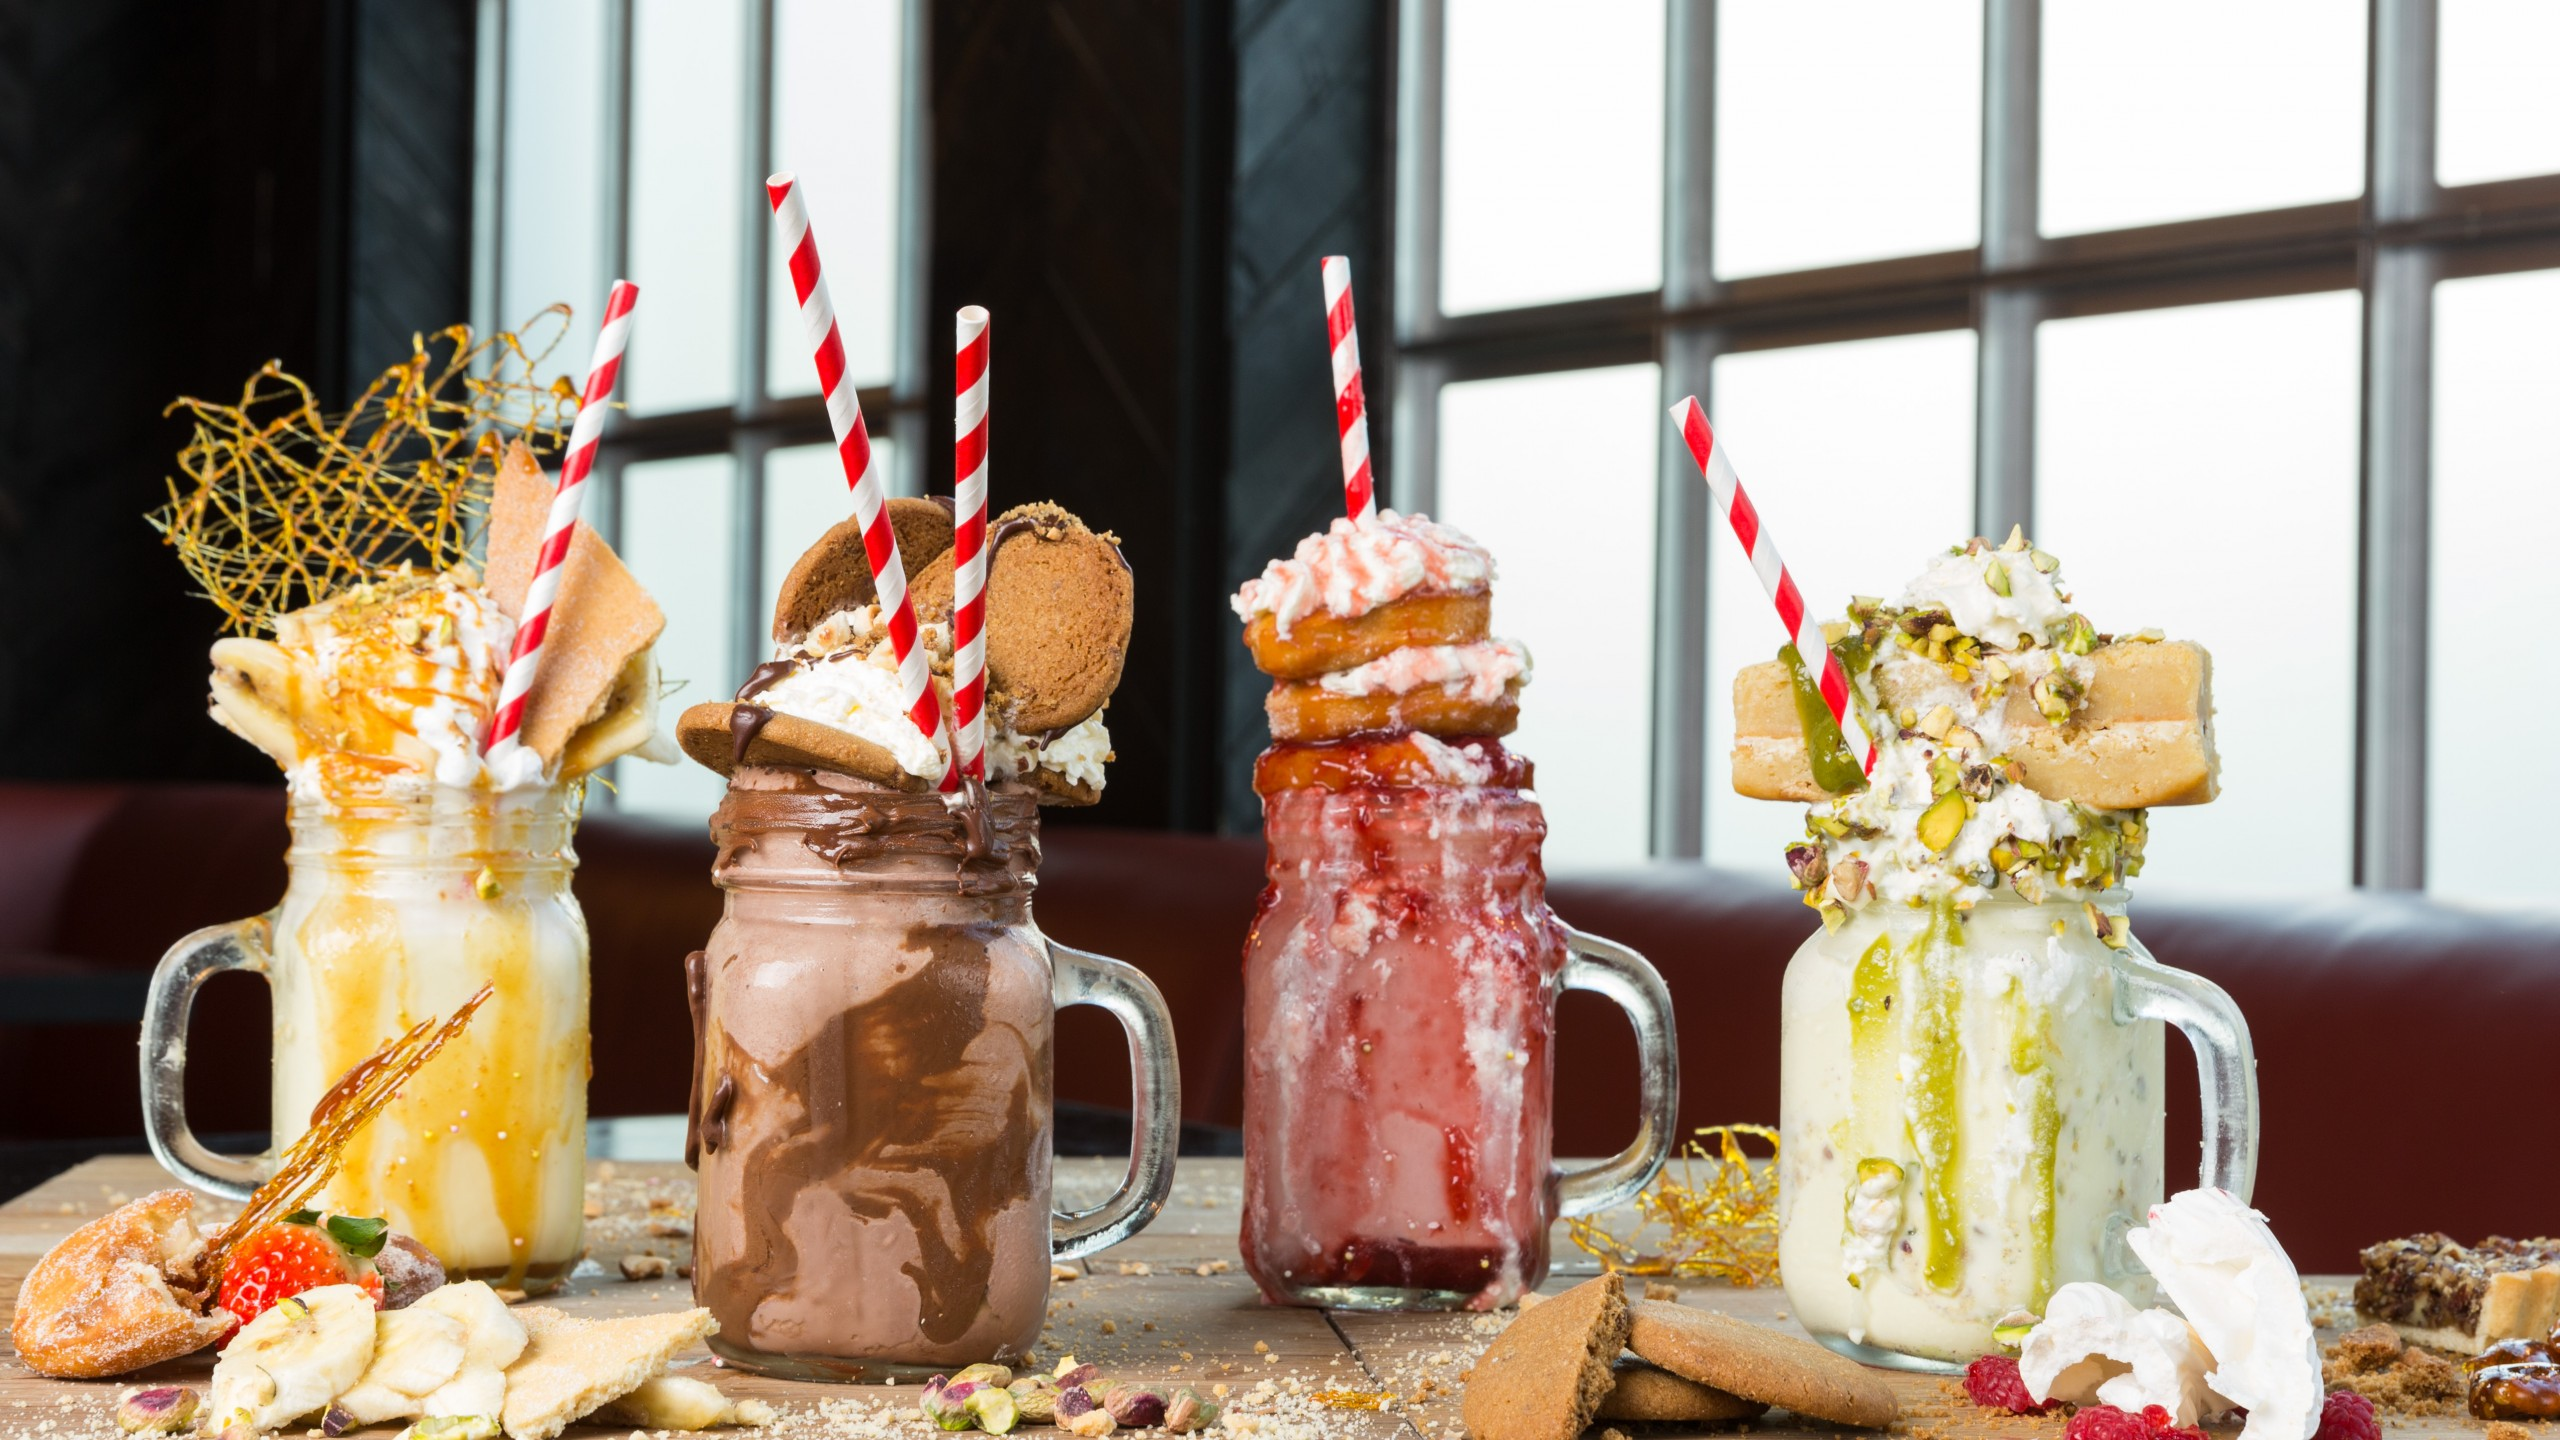 Wallpaper Freak Shake Freakshakes Milk Shake Cake Food